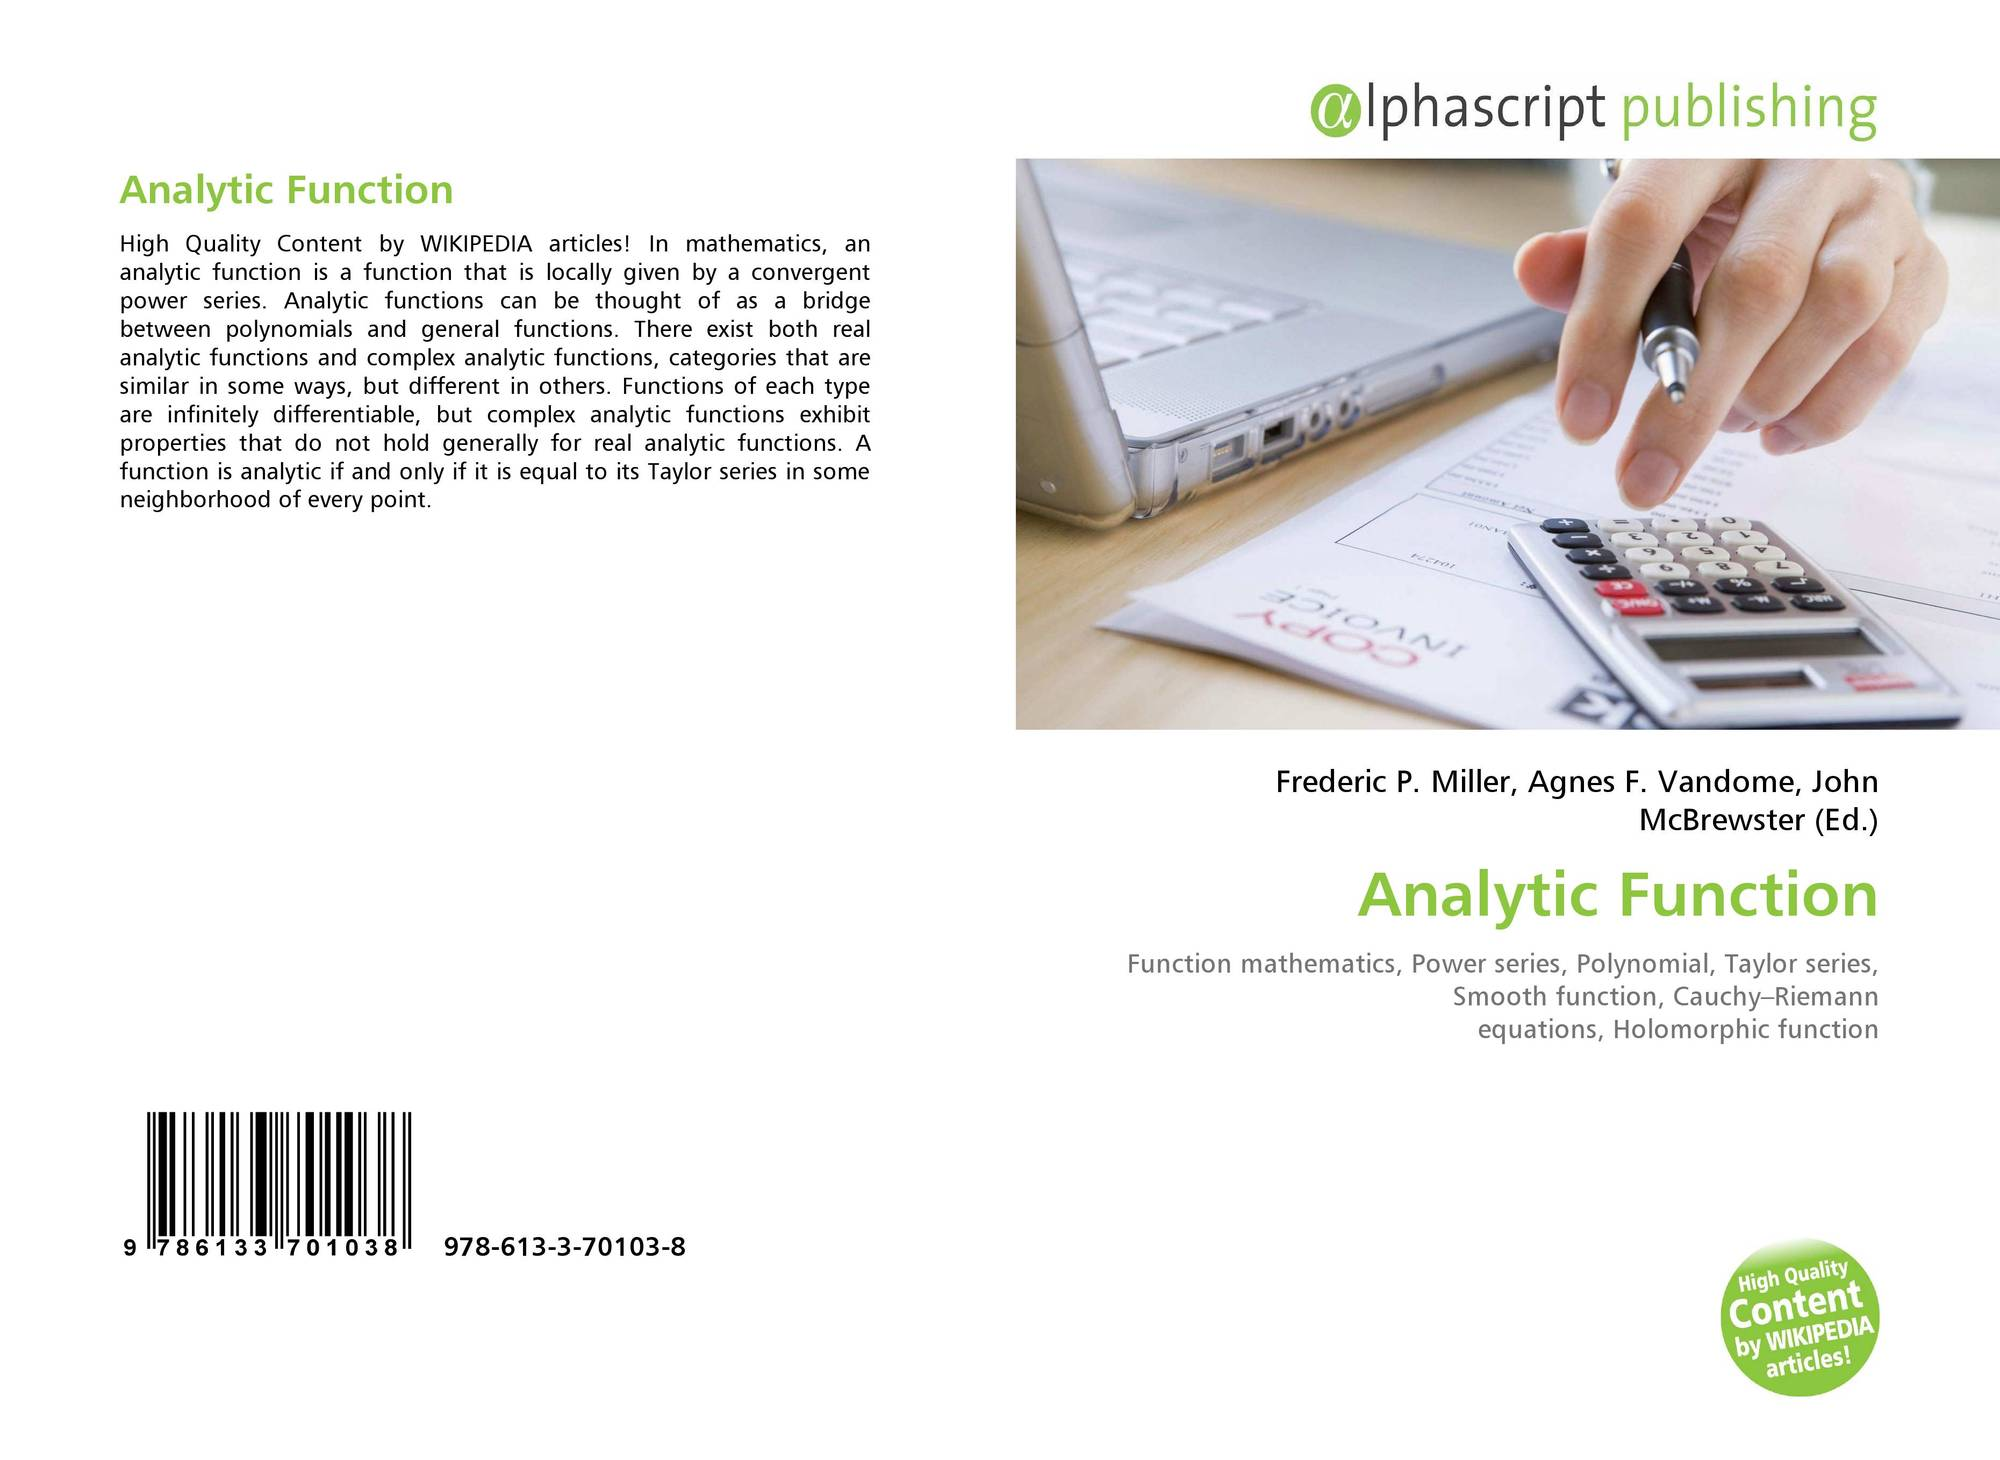 Analytic Function, 978-613-3-70103-8, 613370103X ,9786133701038